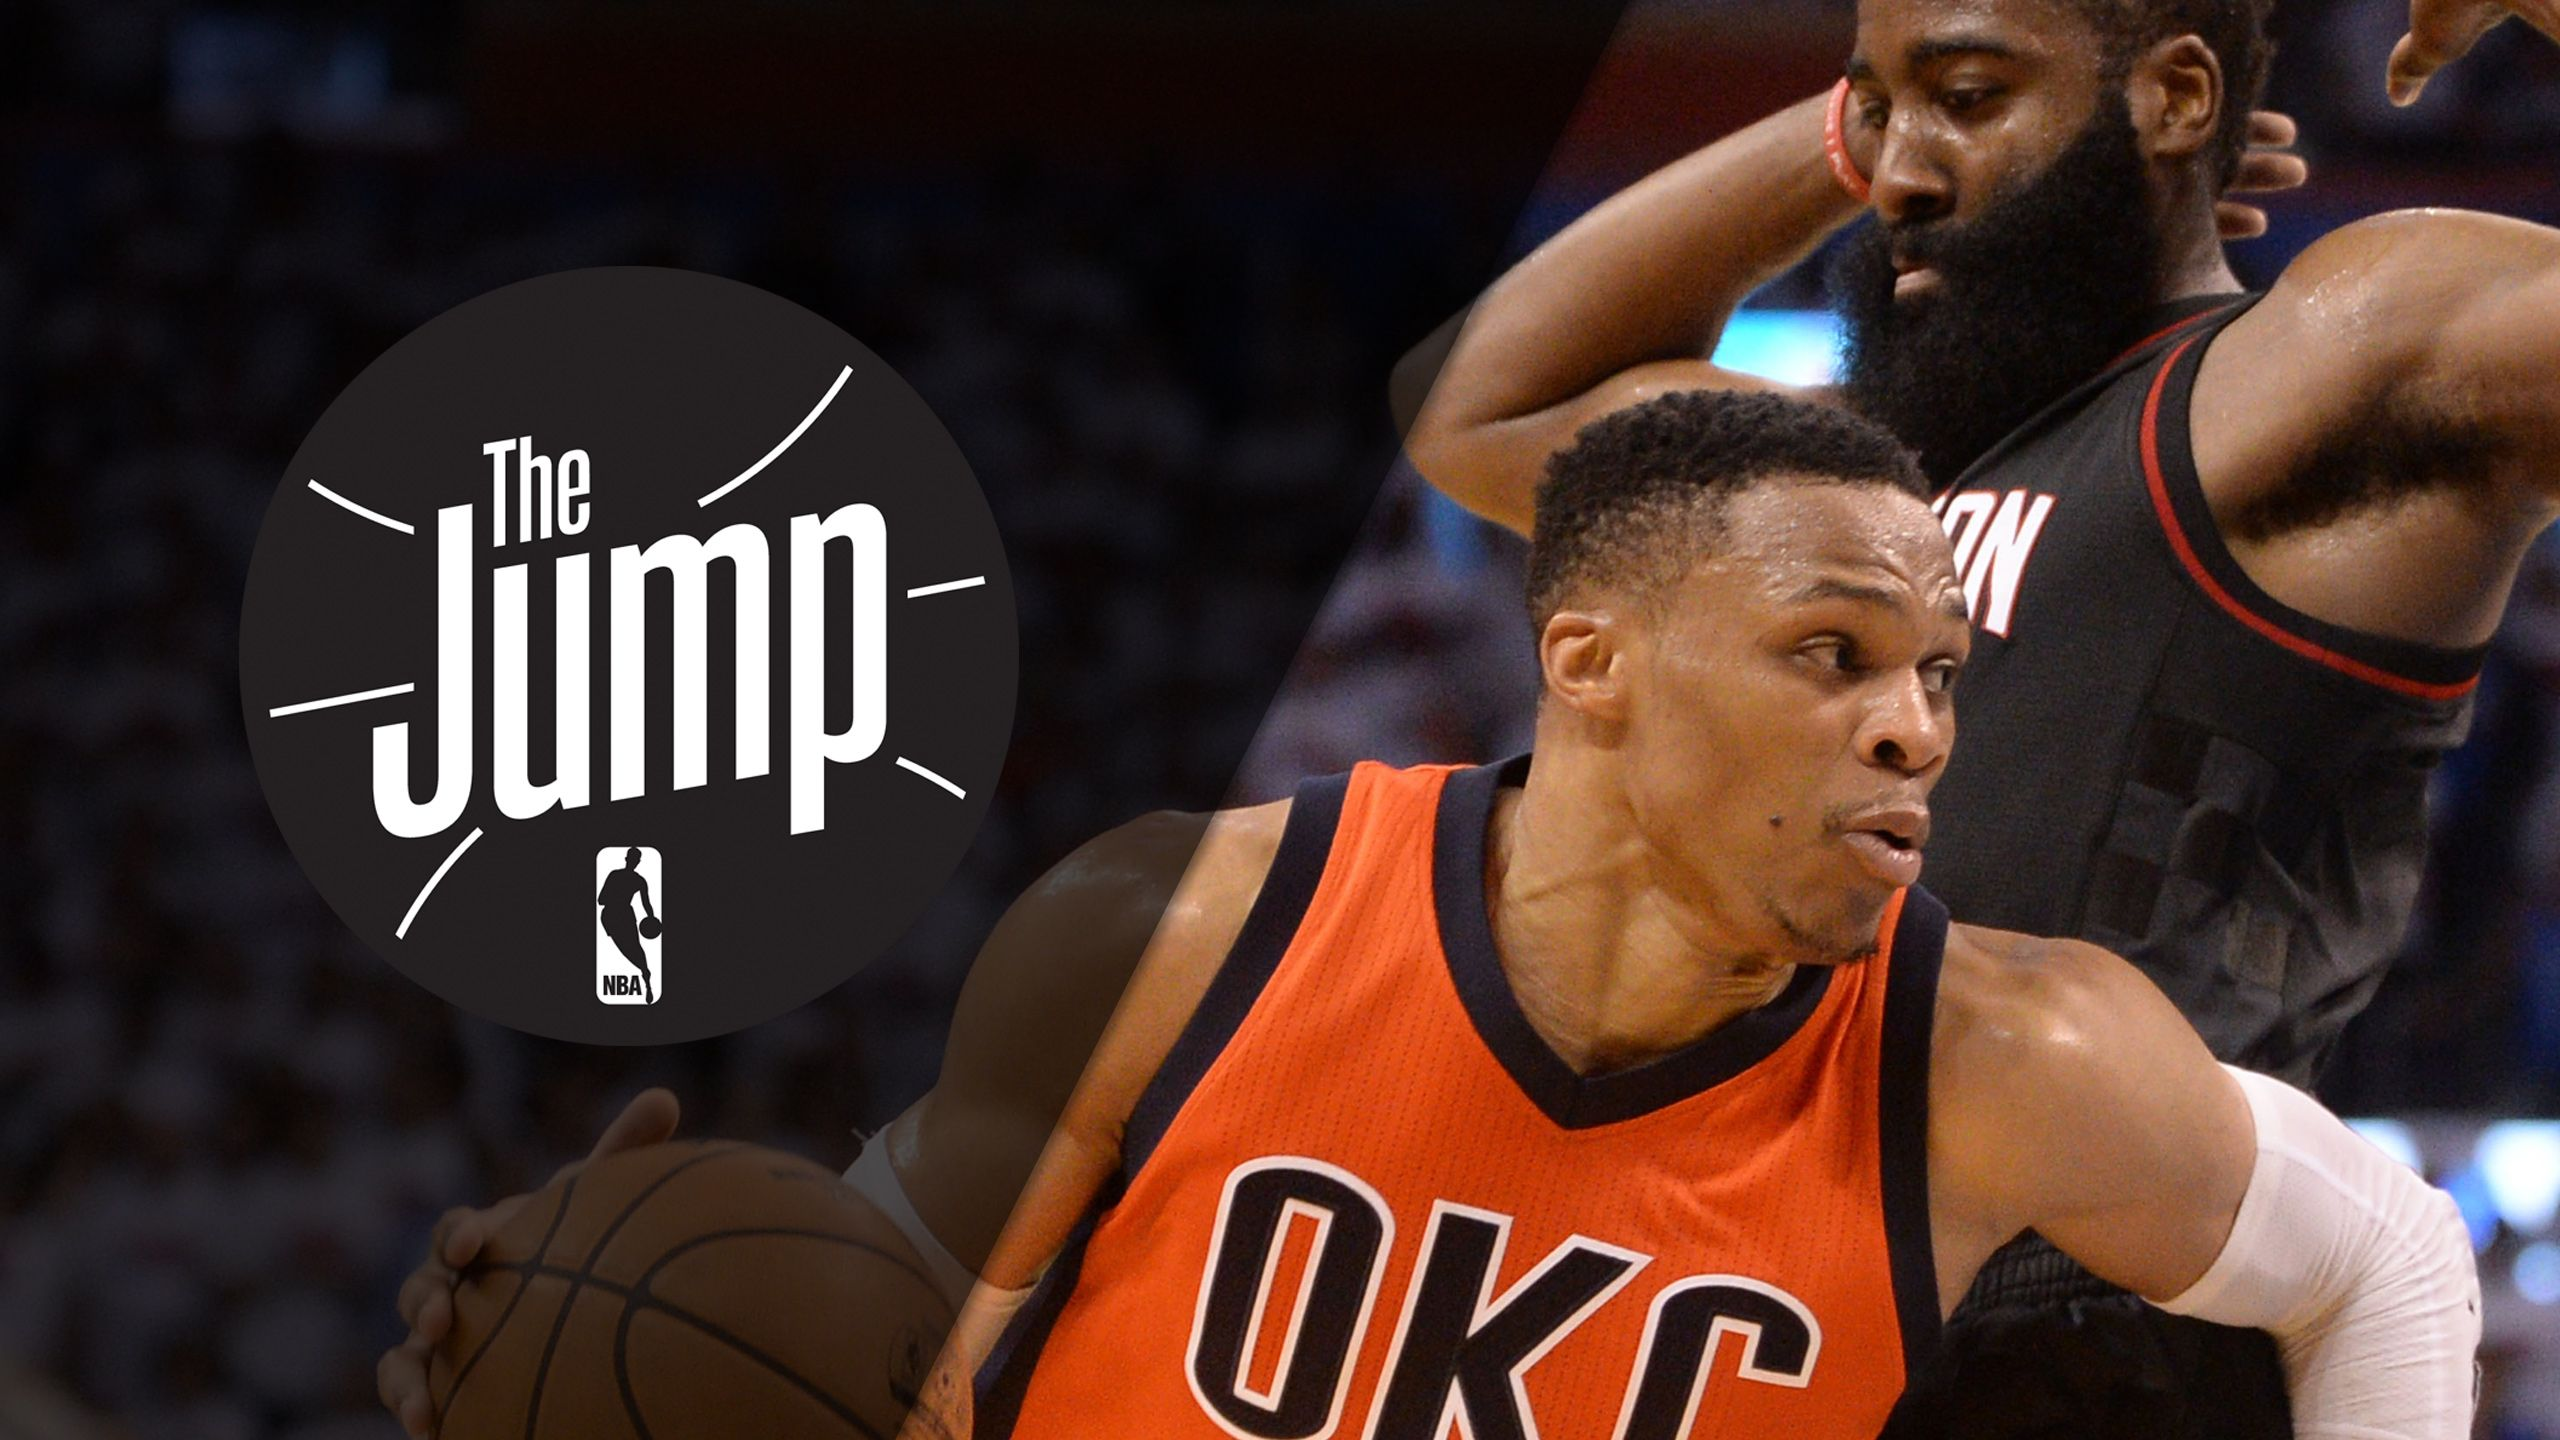 NBA: The Jump Presented by LaQuinta